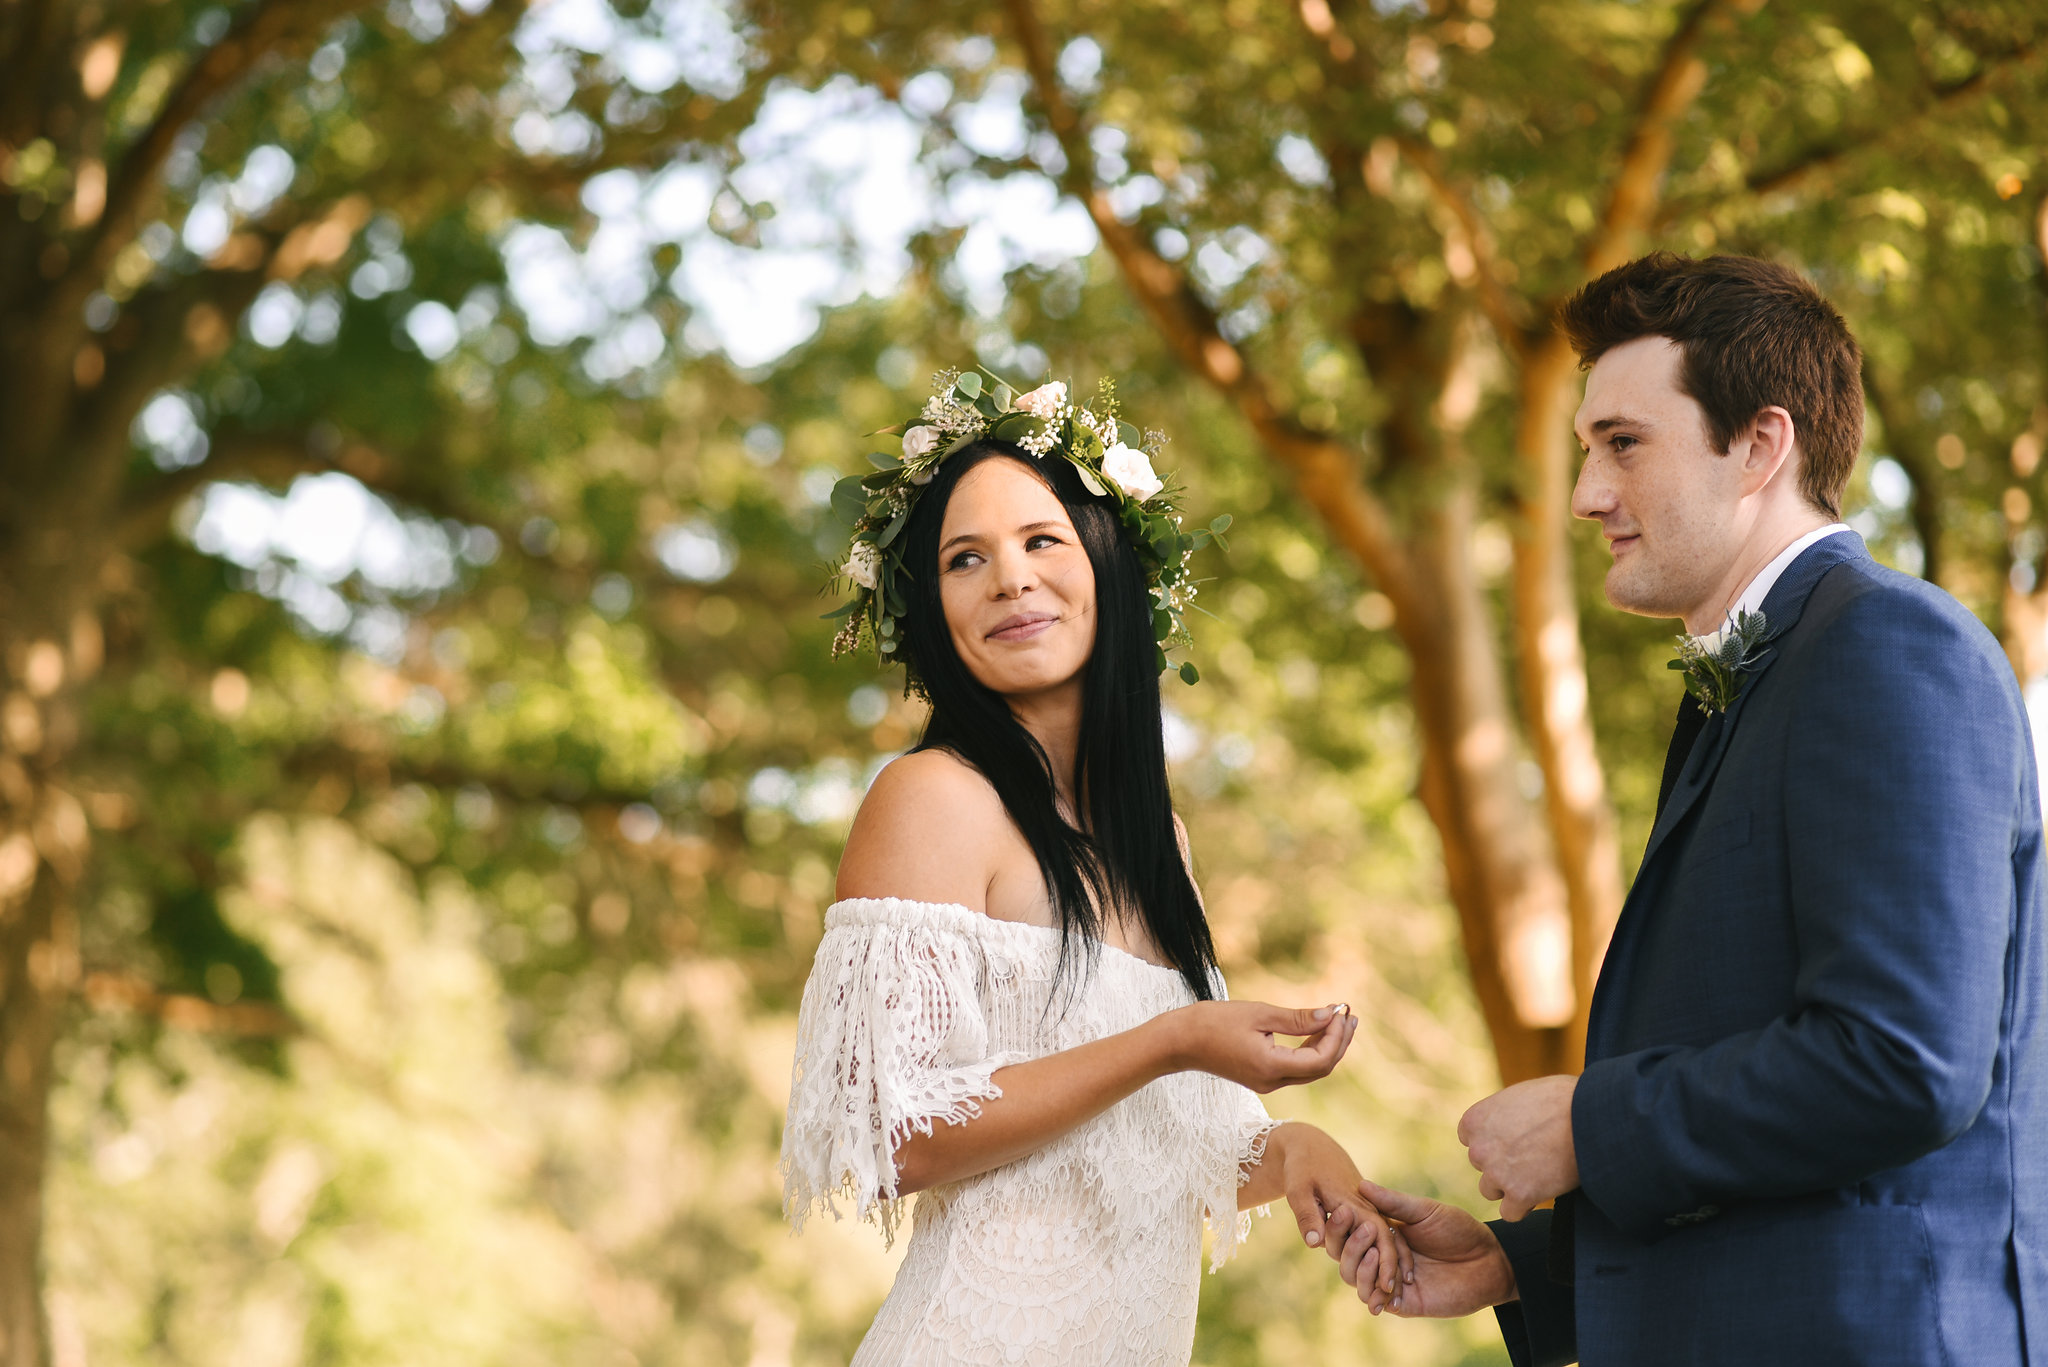 Maryland, Eastern Shore, Baltimore Wedding Photographer, Romantic, Boho, Backyard Wedding, Nature, Bride and Groom Smiling at Guests While Exchanging Rings